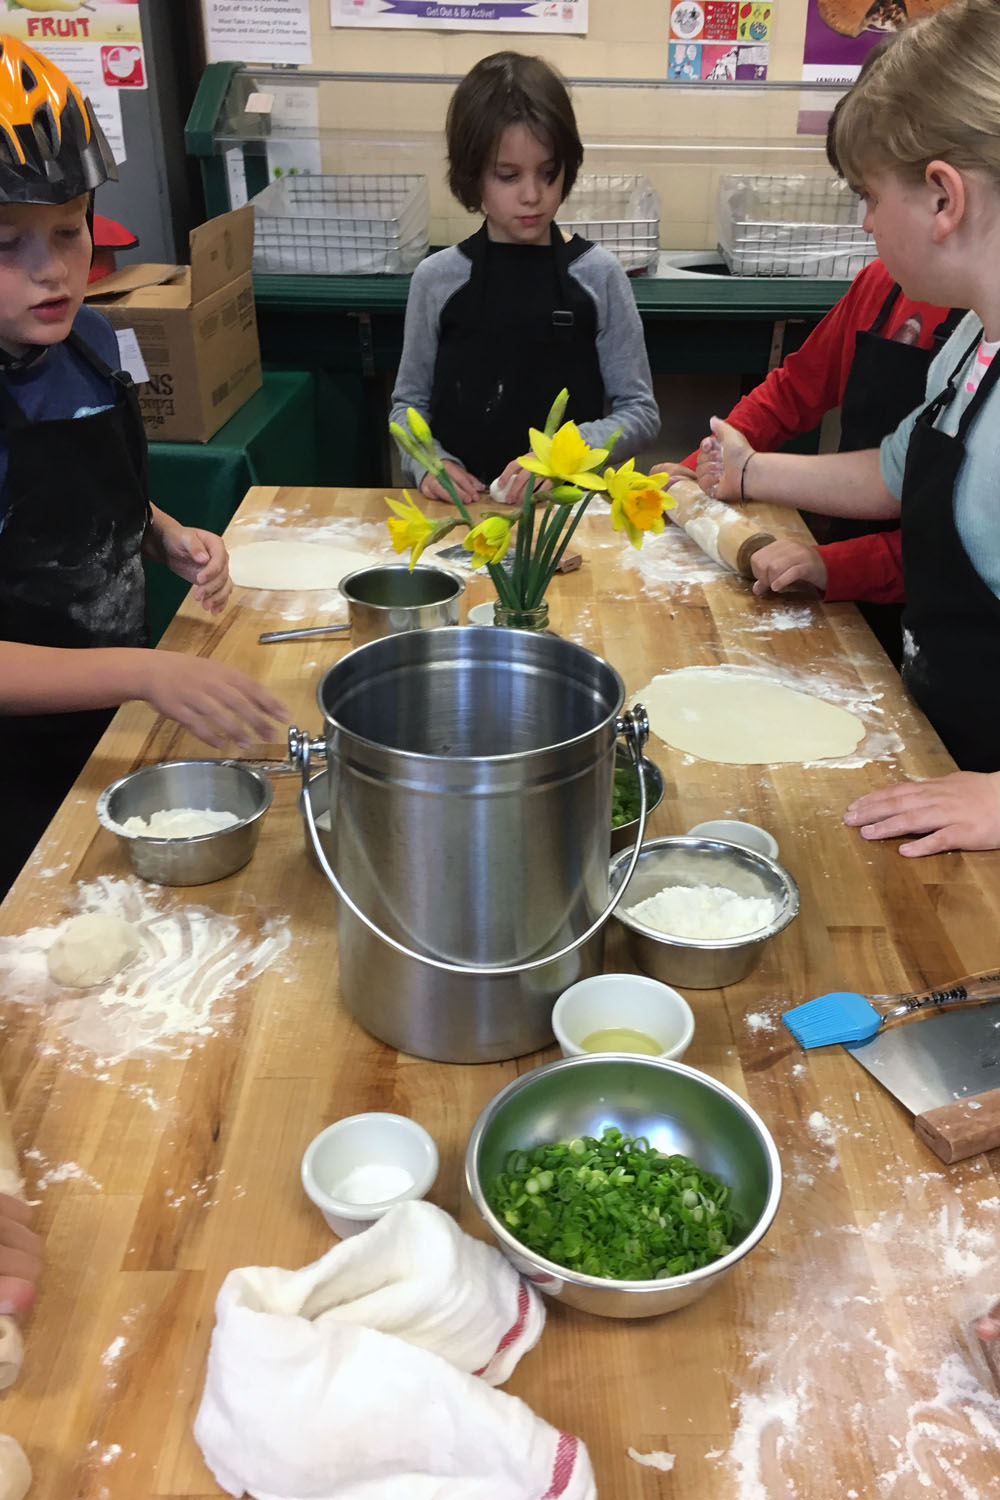 Helmets are a key safety tool in the kitchen classroom ;)